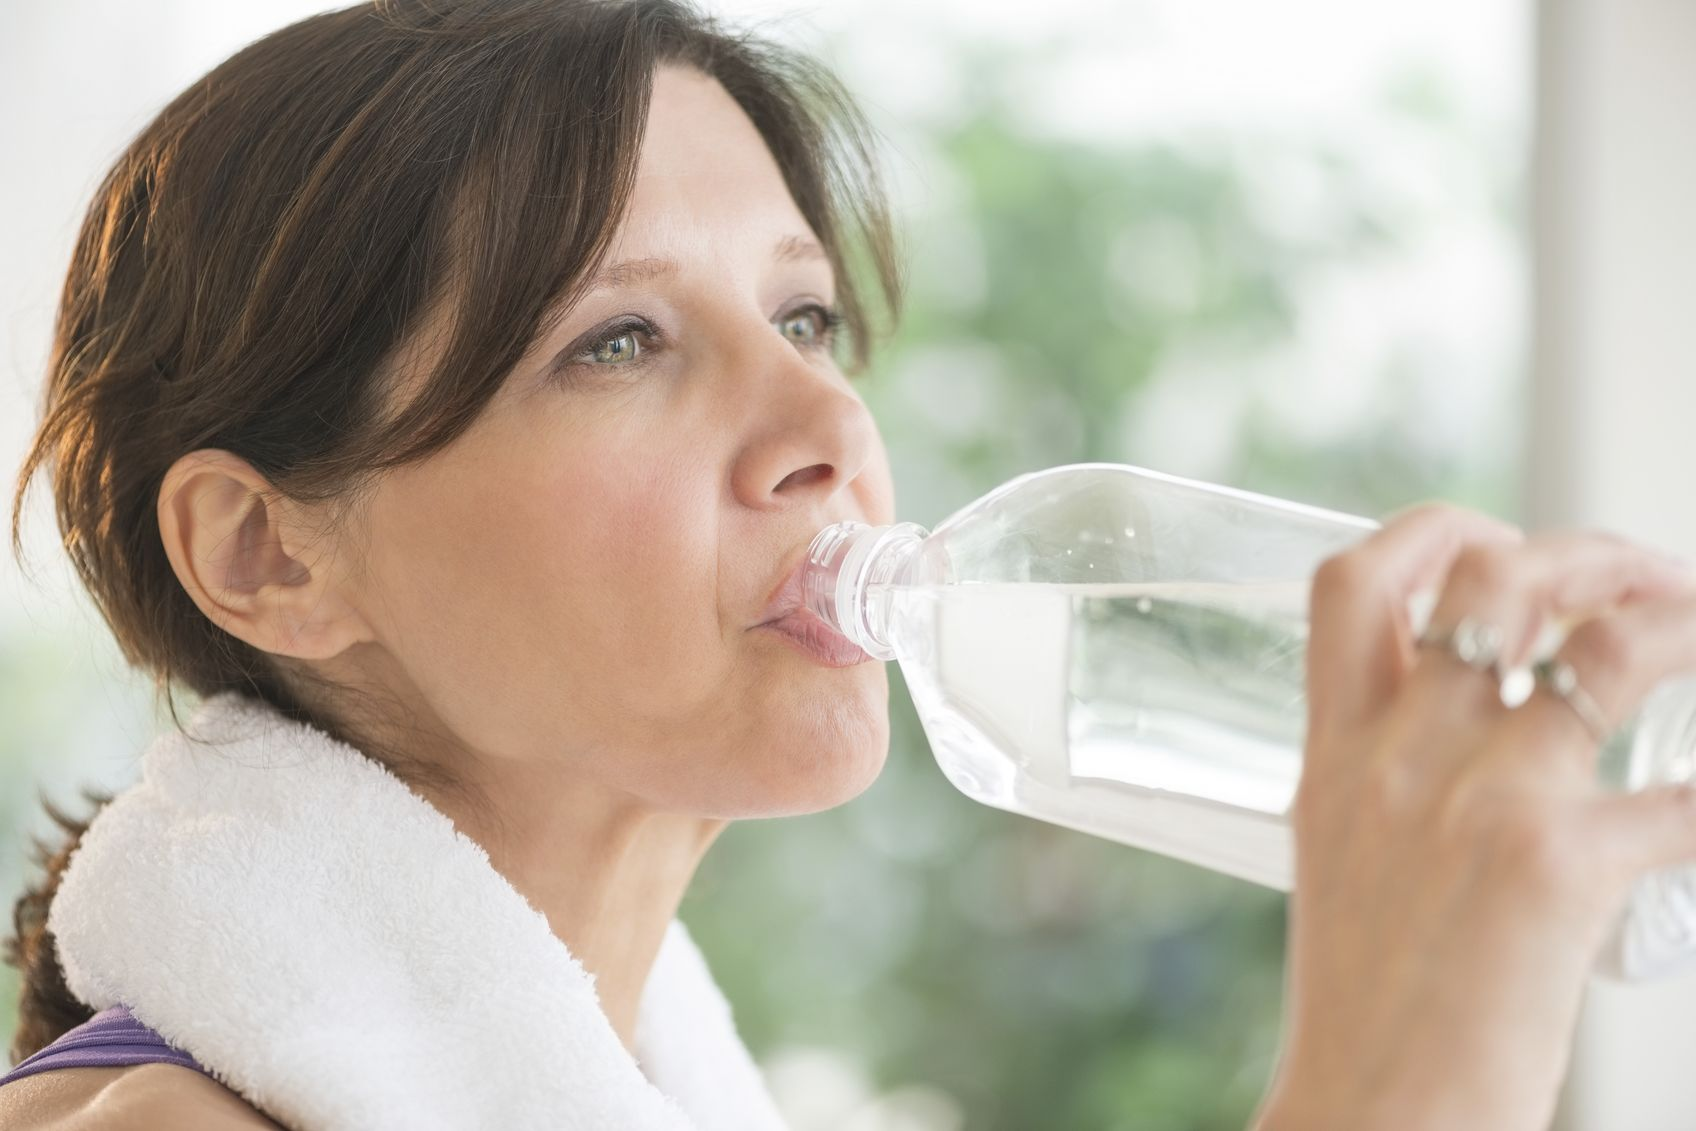 How to drink water - cardiologist advice 19